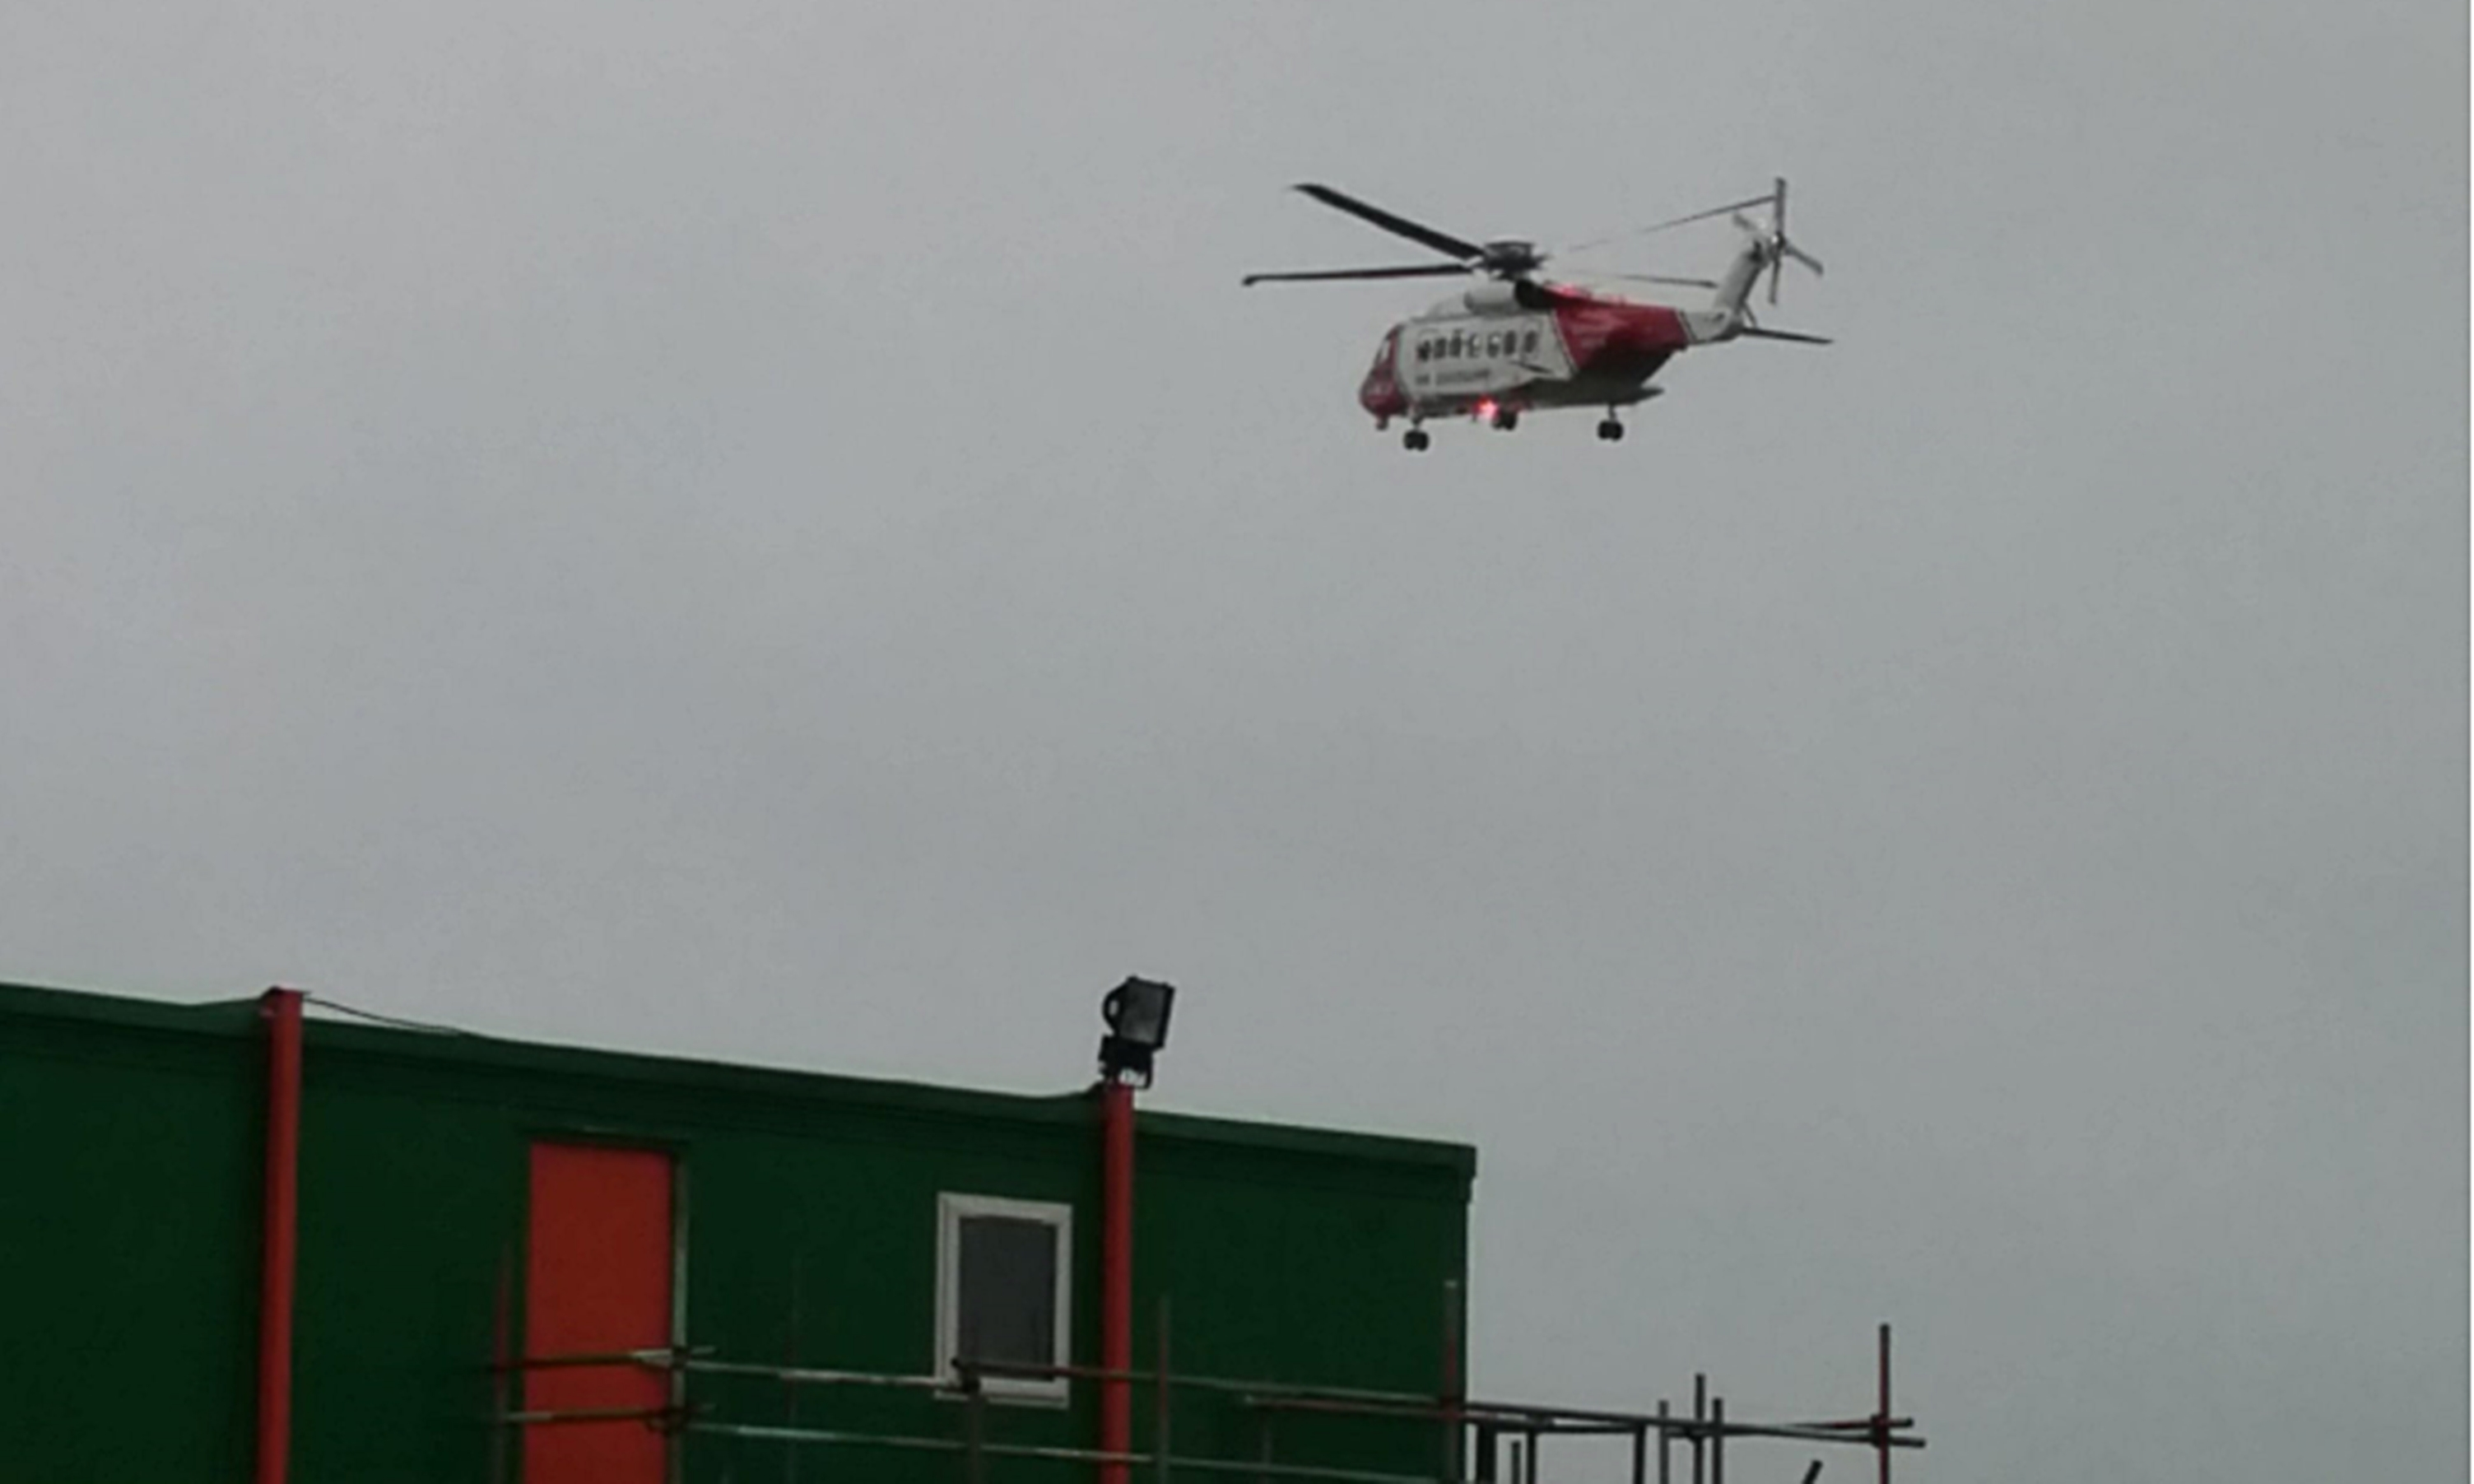 A coastguard helicopter searches the Tay earlier this month.